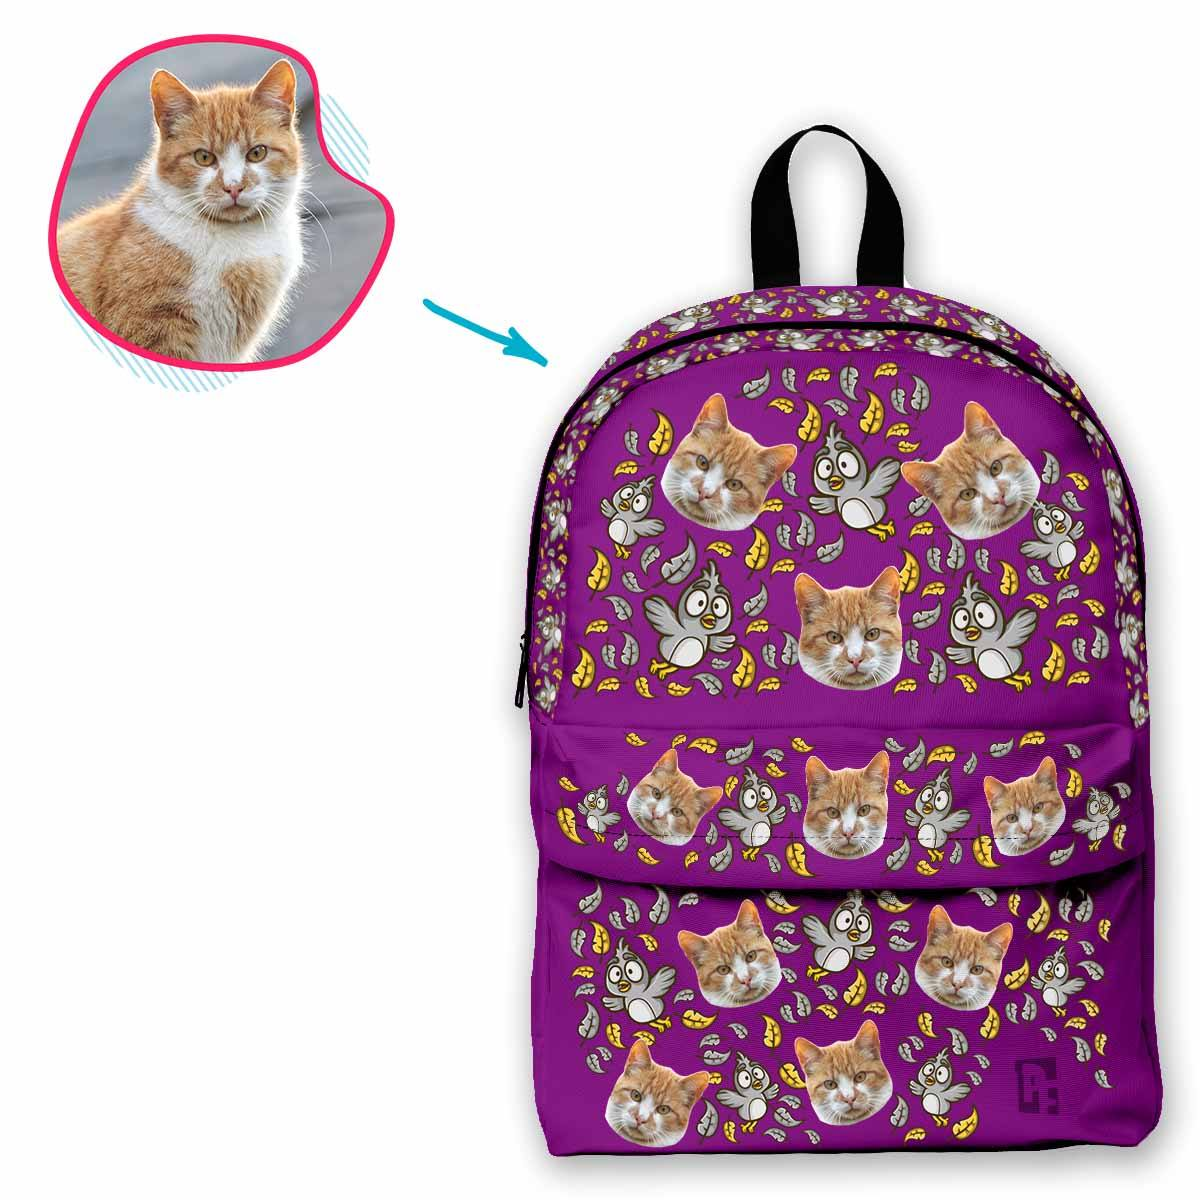 purple Bird classic backpack personalized with photo of face printed on it